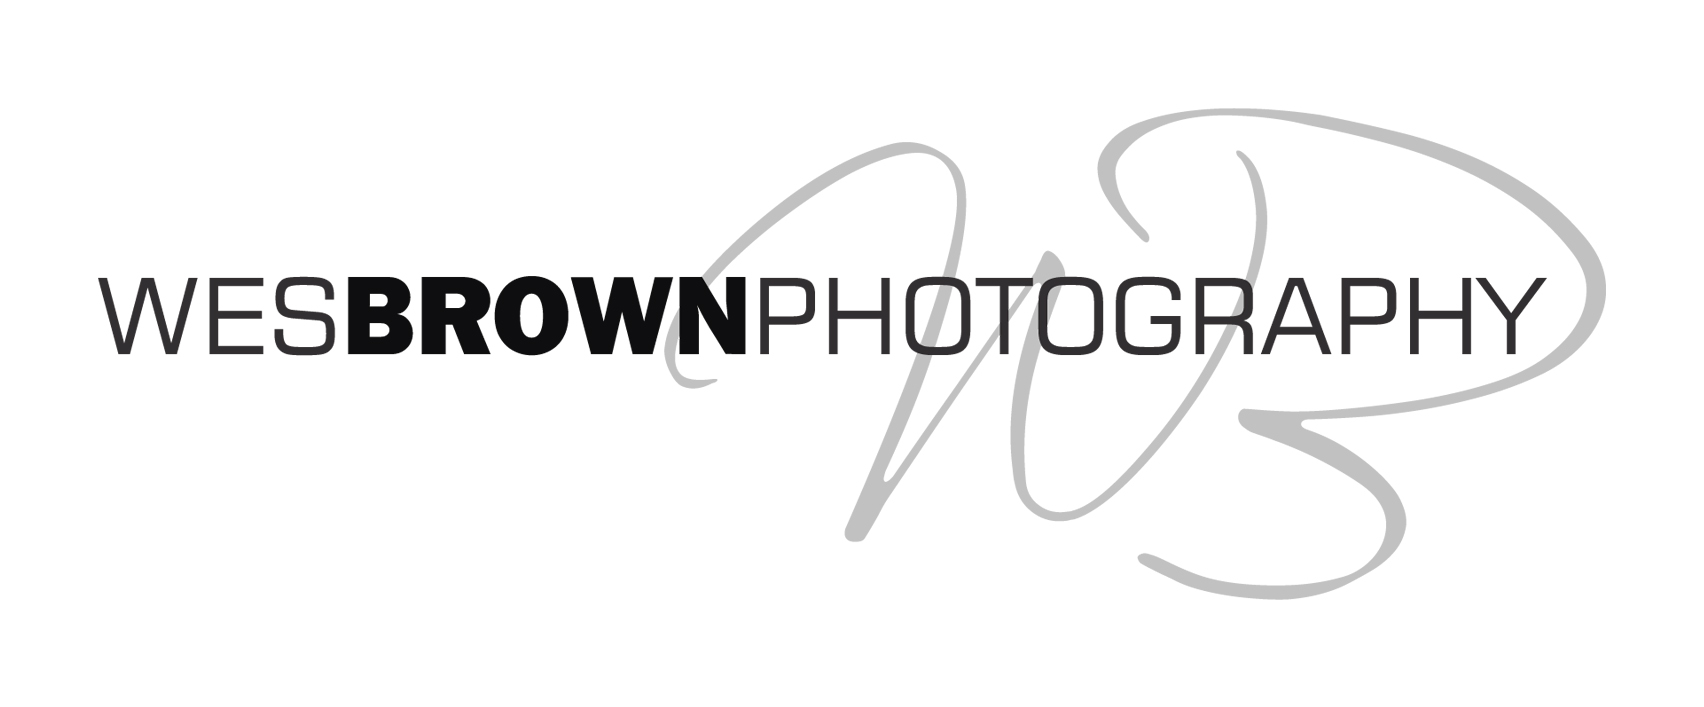 Wes Brown Photography